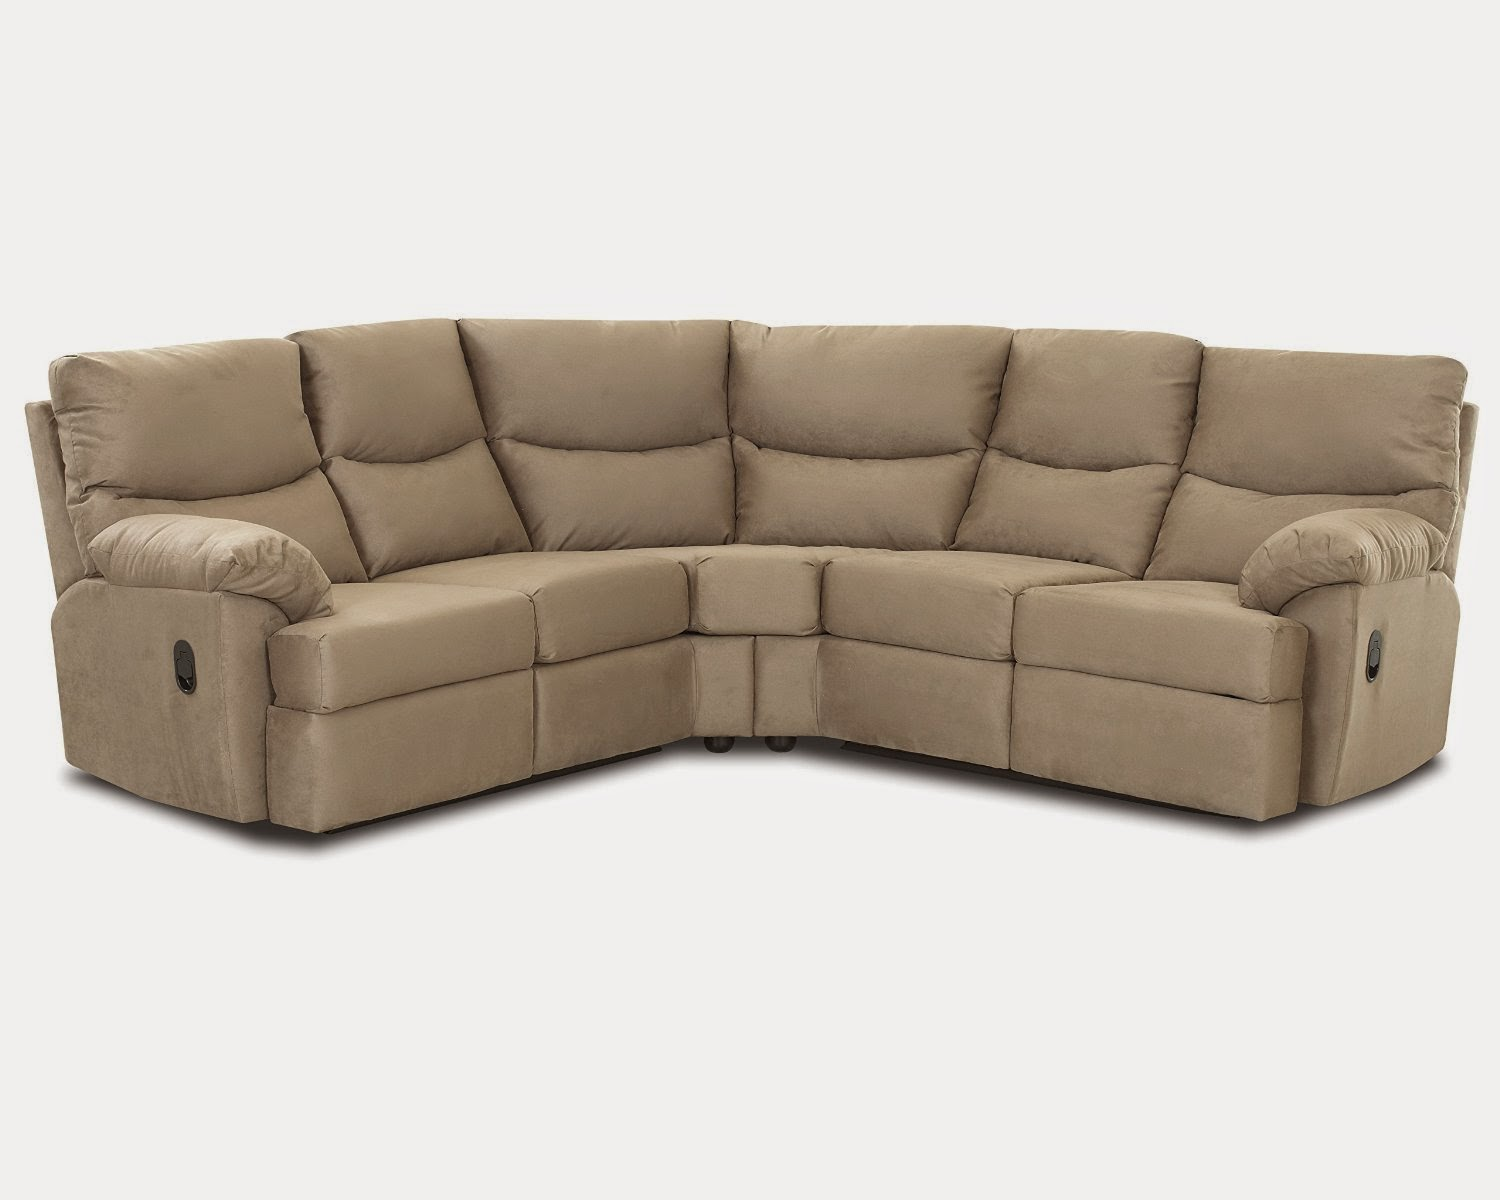 Top seller reclining and recliner sofa loveseat phoenix Sleeper sofa sectional